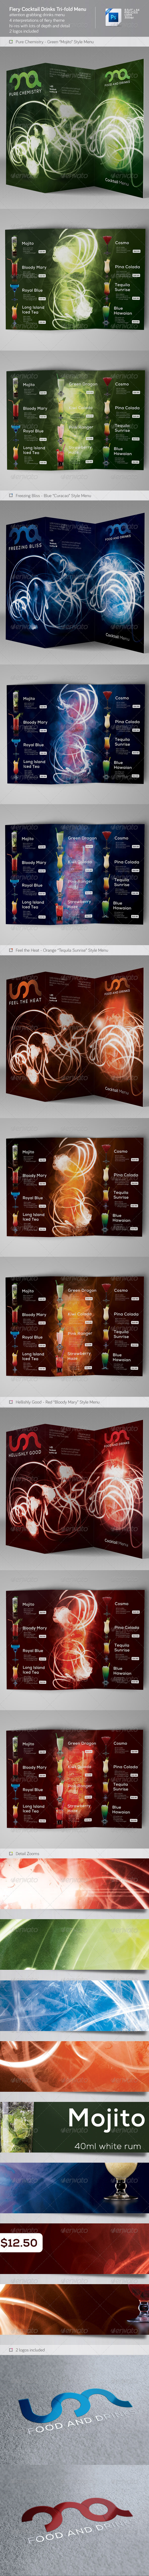 GraphicRiver Fiery Cocktail Drinks Menu 4151724